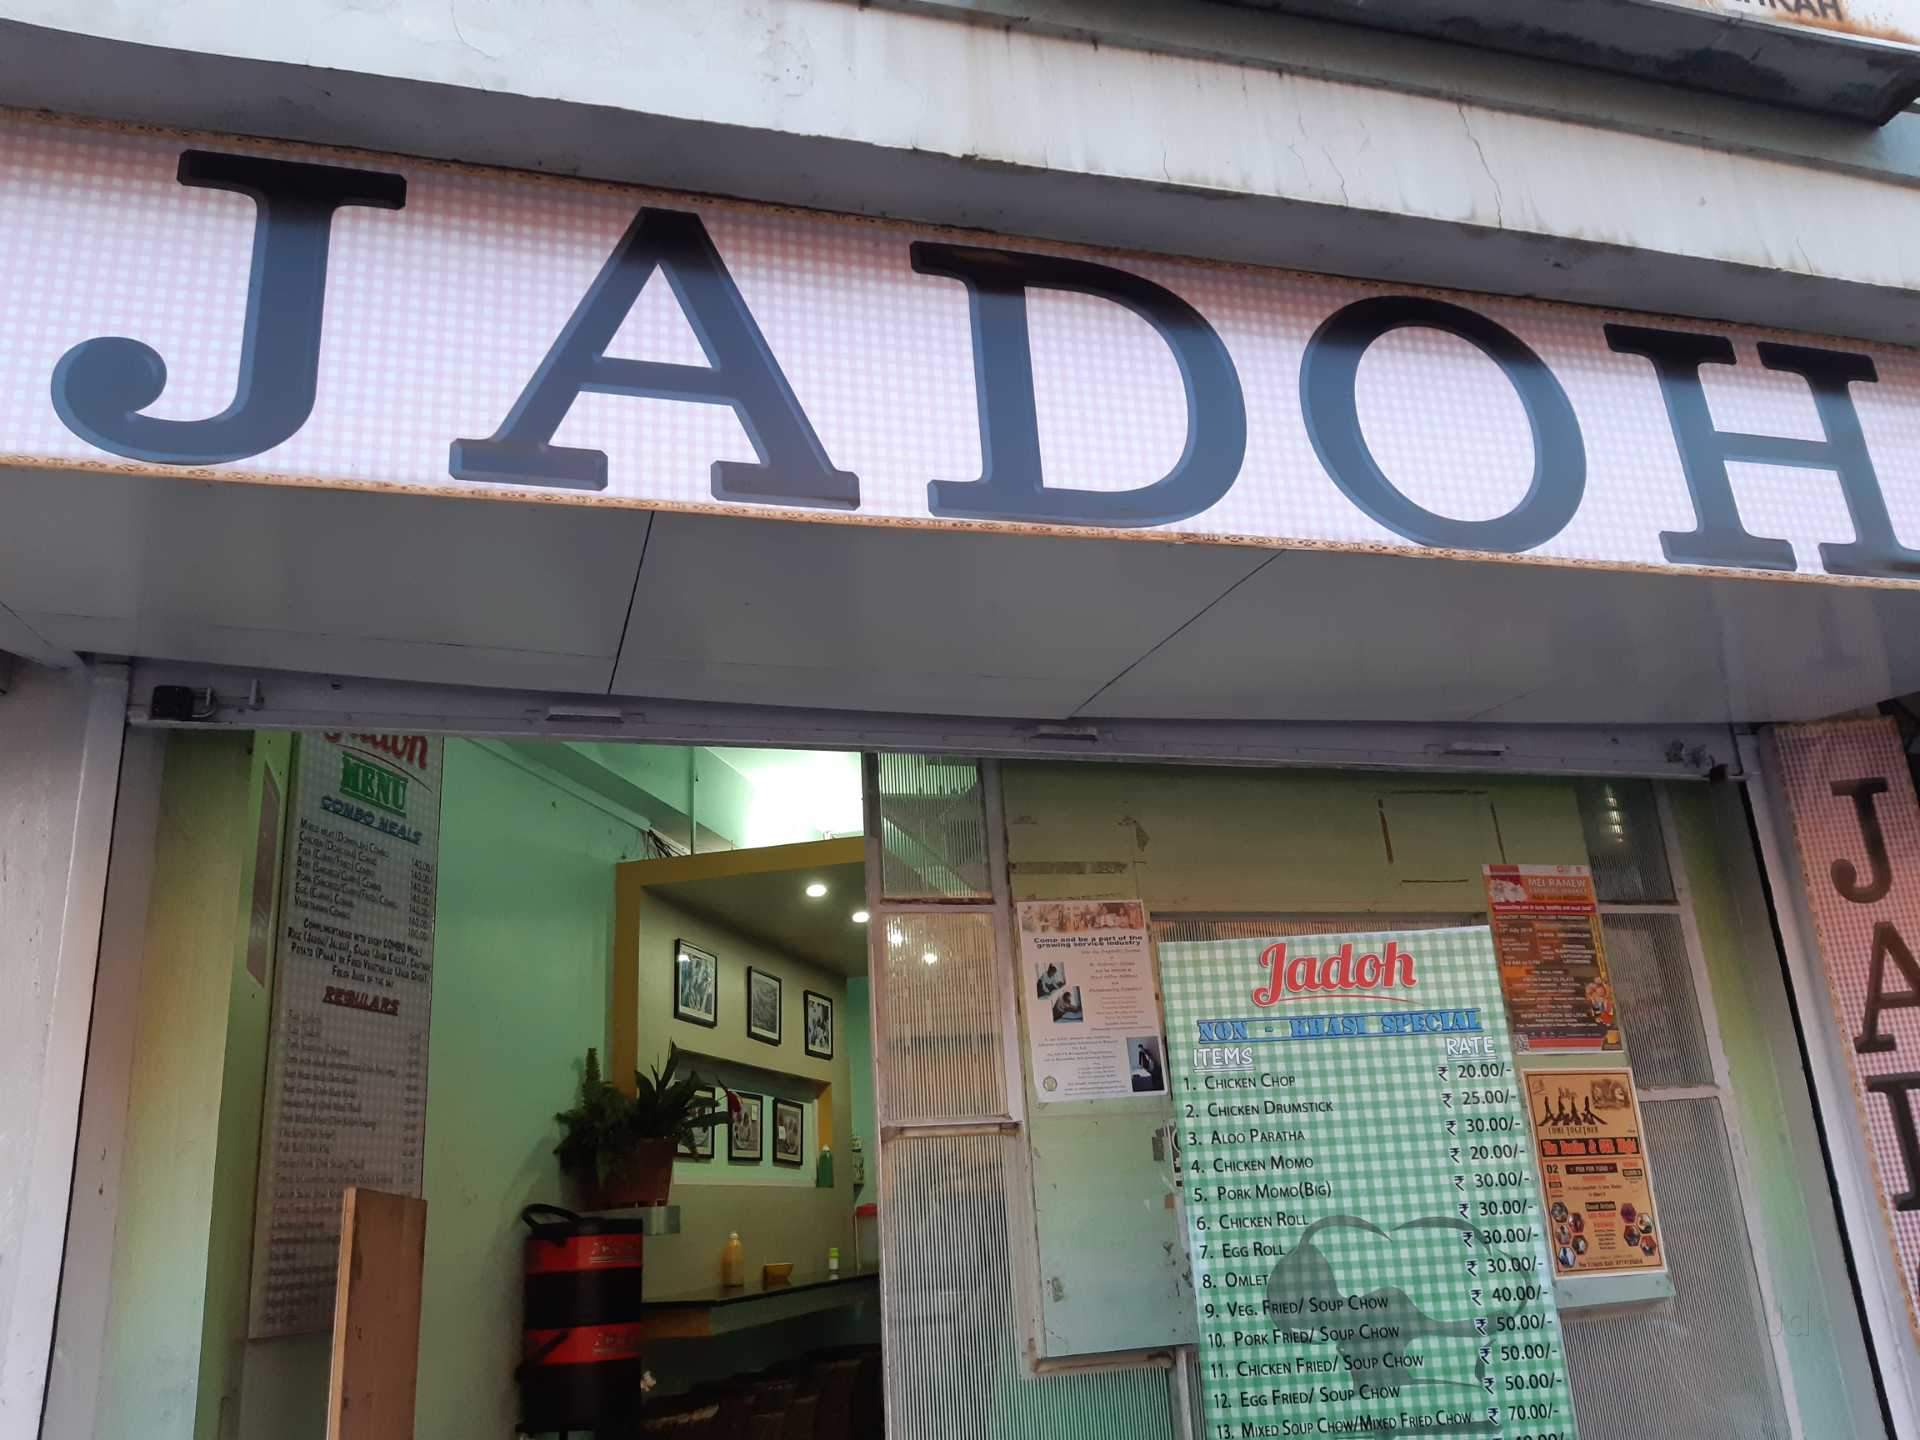 Jadoh - Restaurant In Shillong Which Every Food Fanatic Must Visit